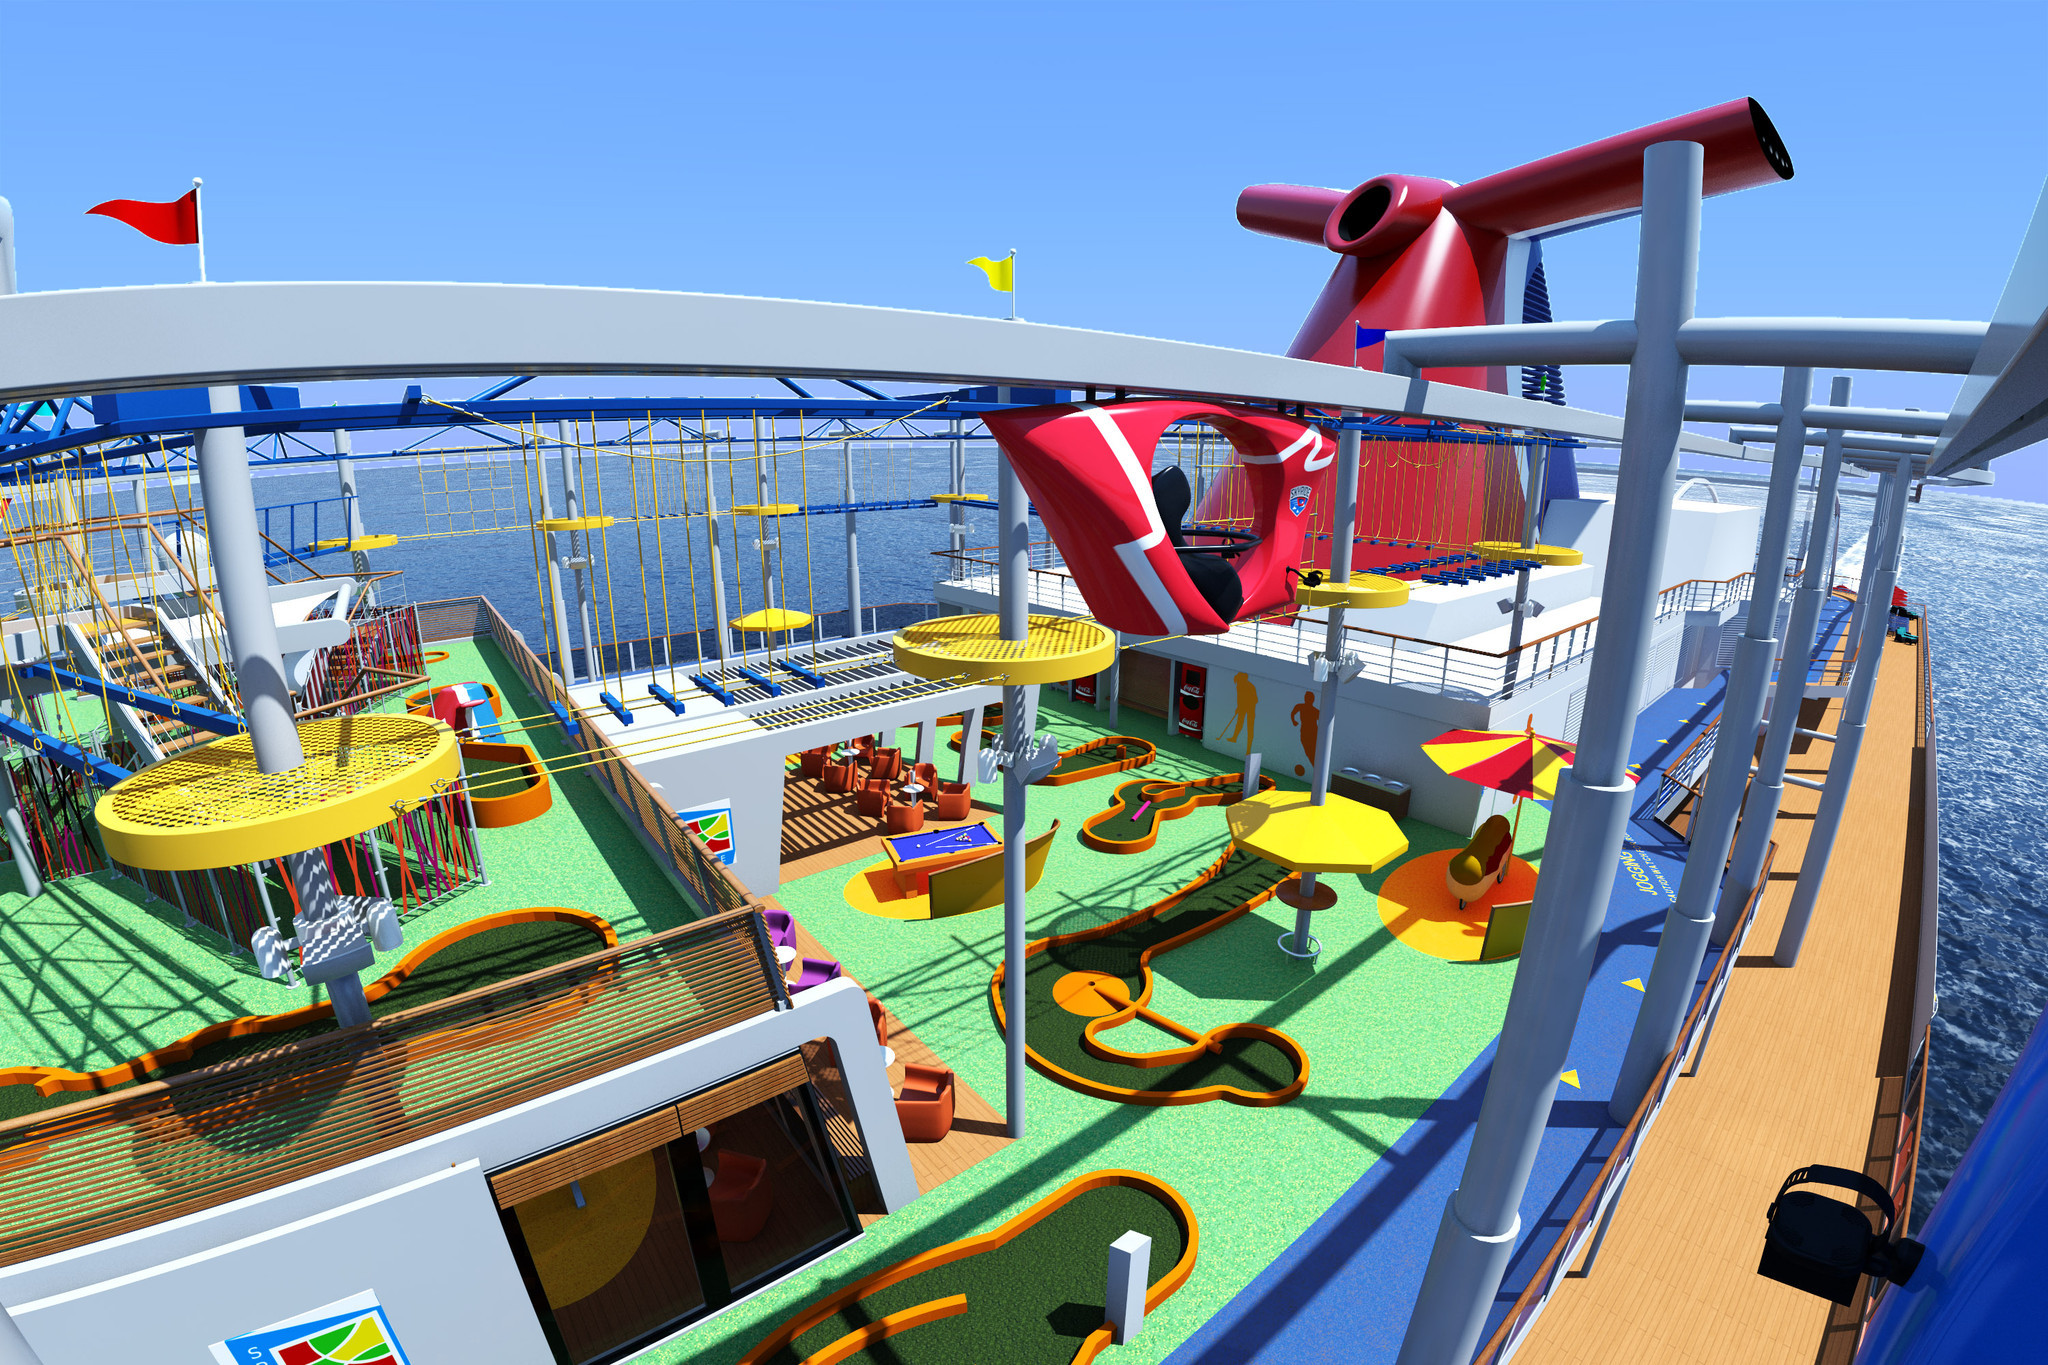 Carnival Vista The Cruise Line S Newest And Largest Ship To Be Based In Miami Sun Sentinel